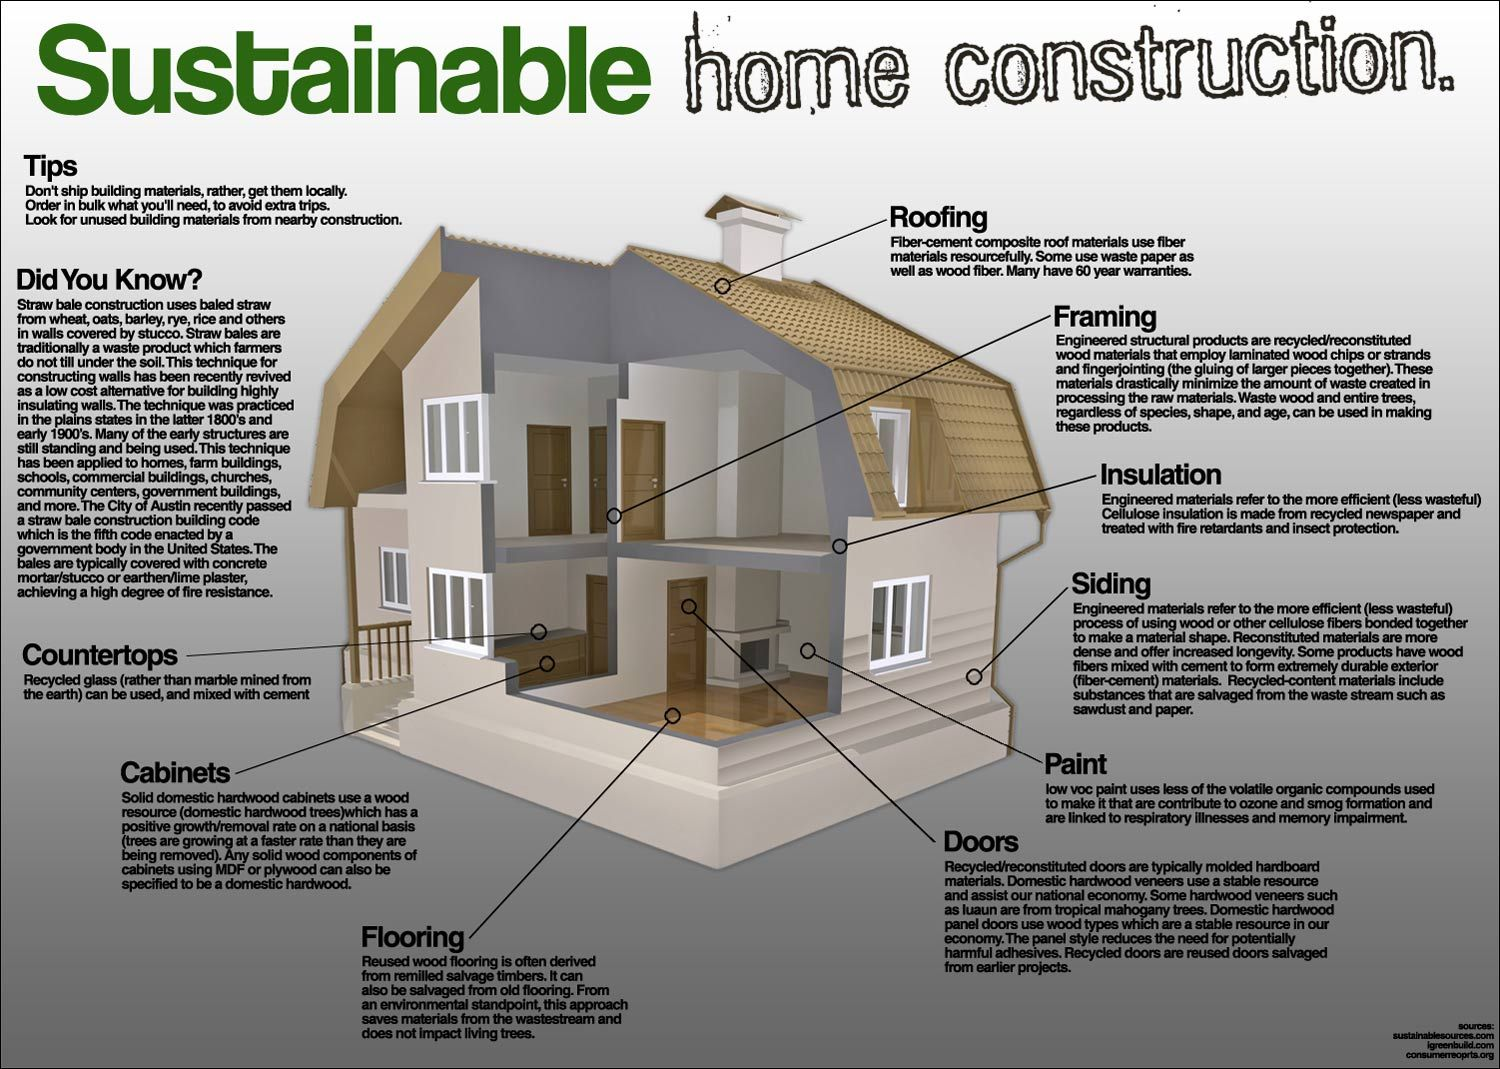 How Do You Build The Most Sustainable Home? #sustainability Eco